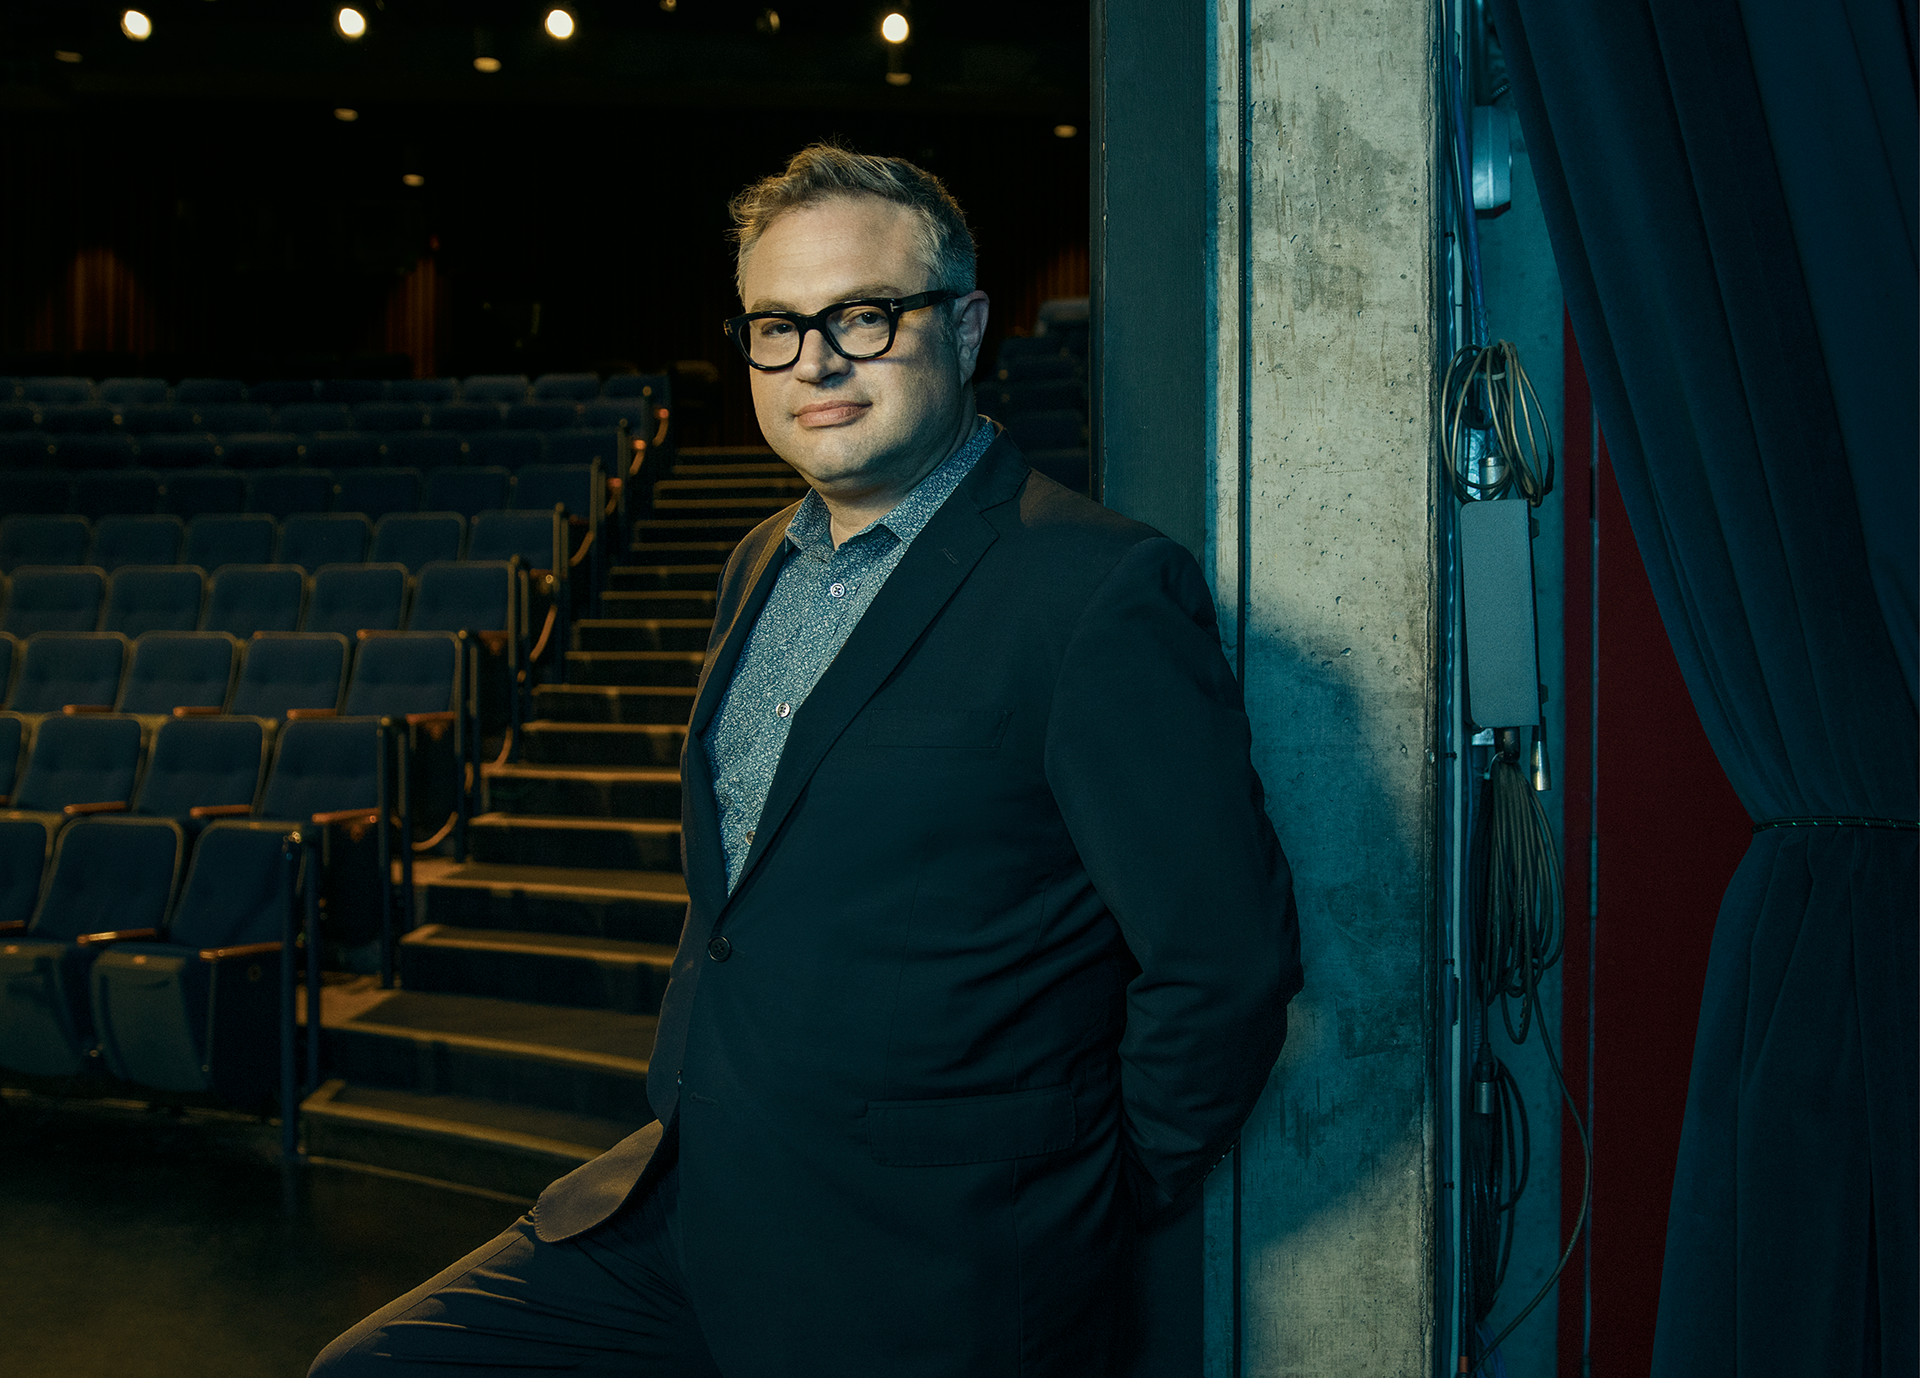 OCT Professionally Speaking magazine rebranded portrait Steven Page